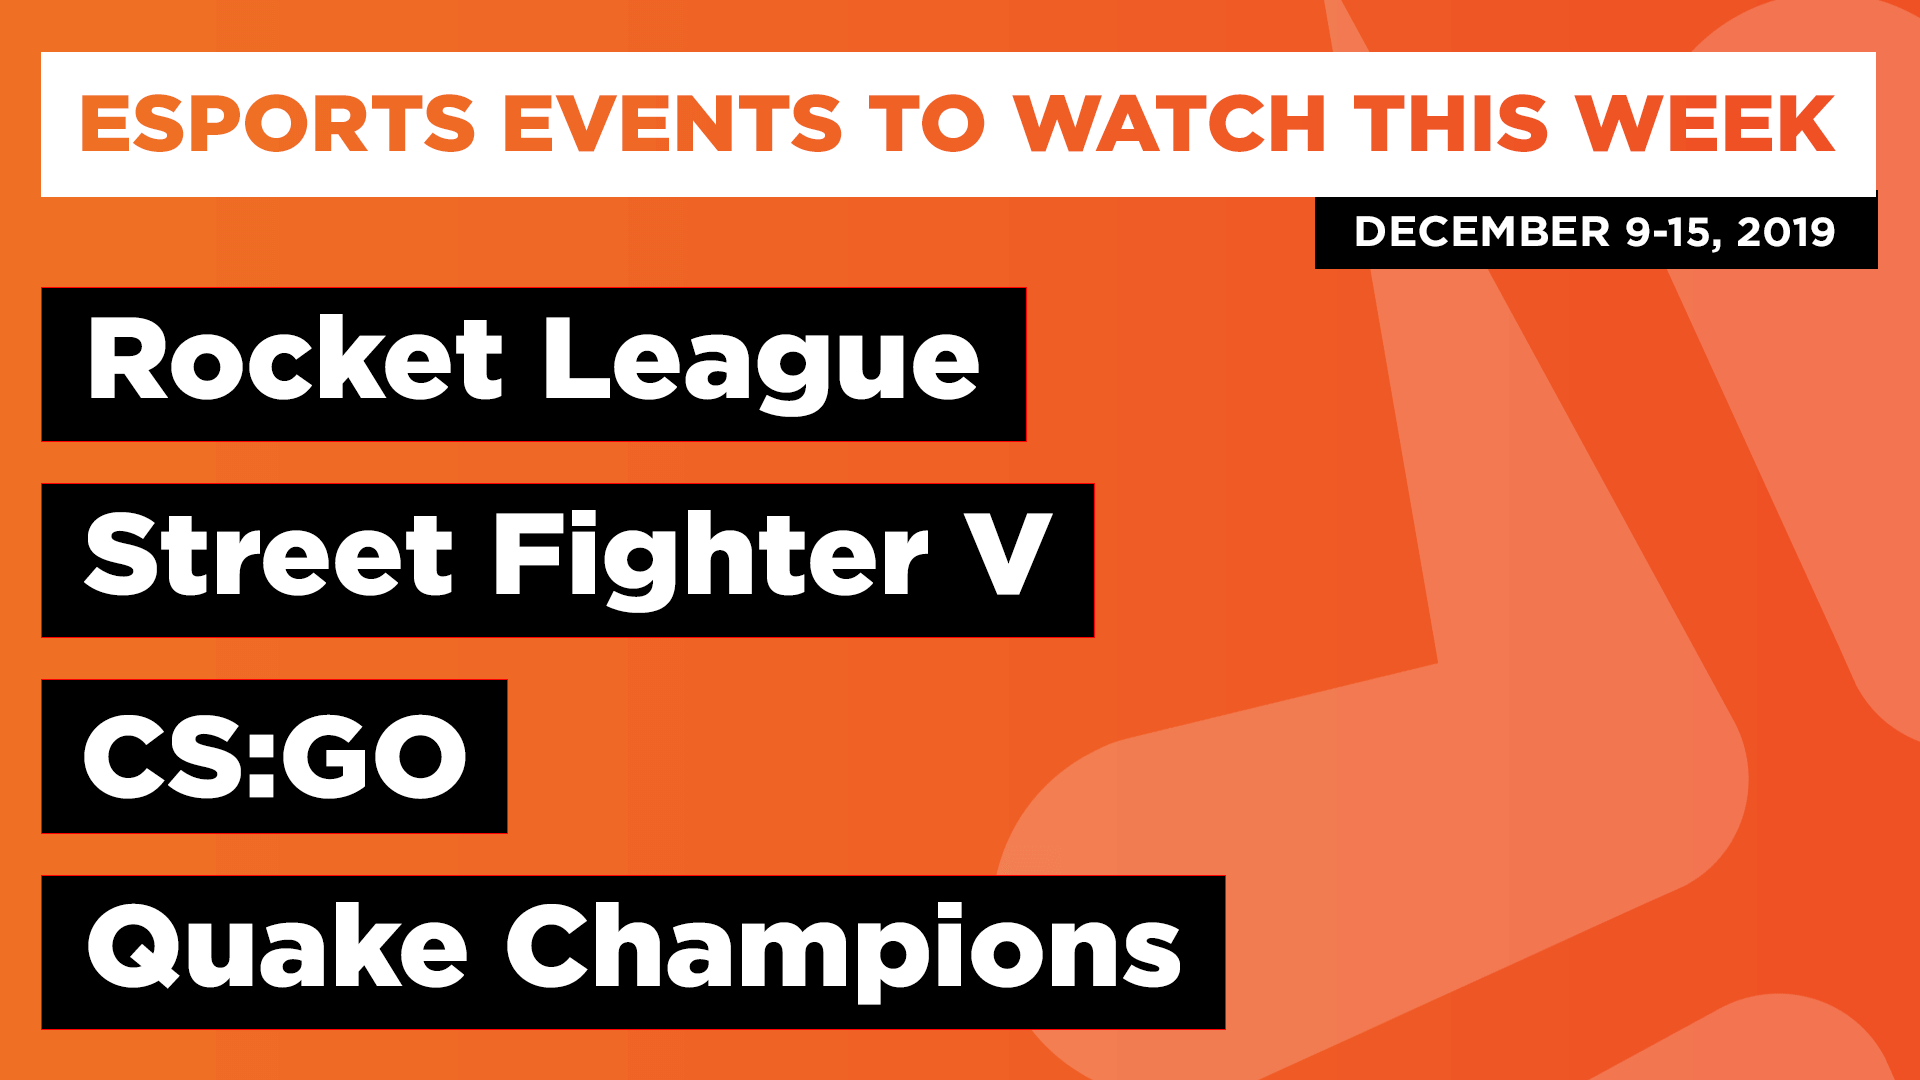 Esports Events to Watch This Week (Dec 9-15, 2019)